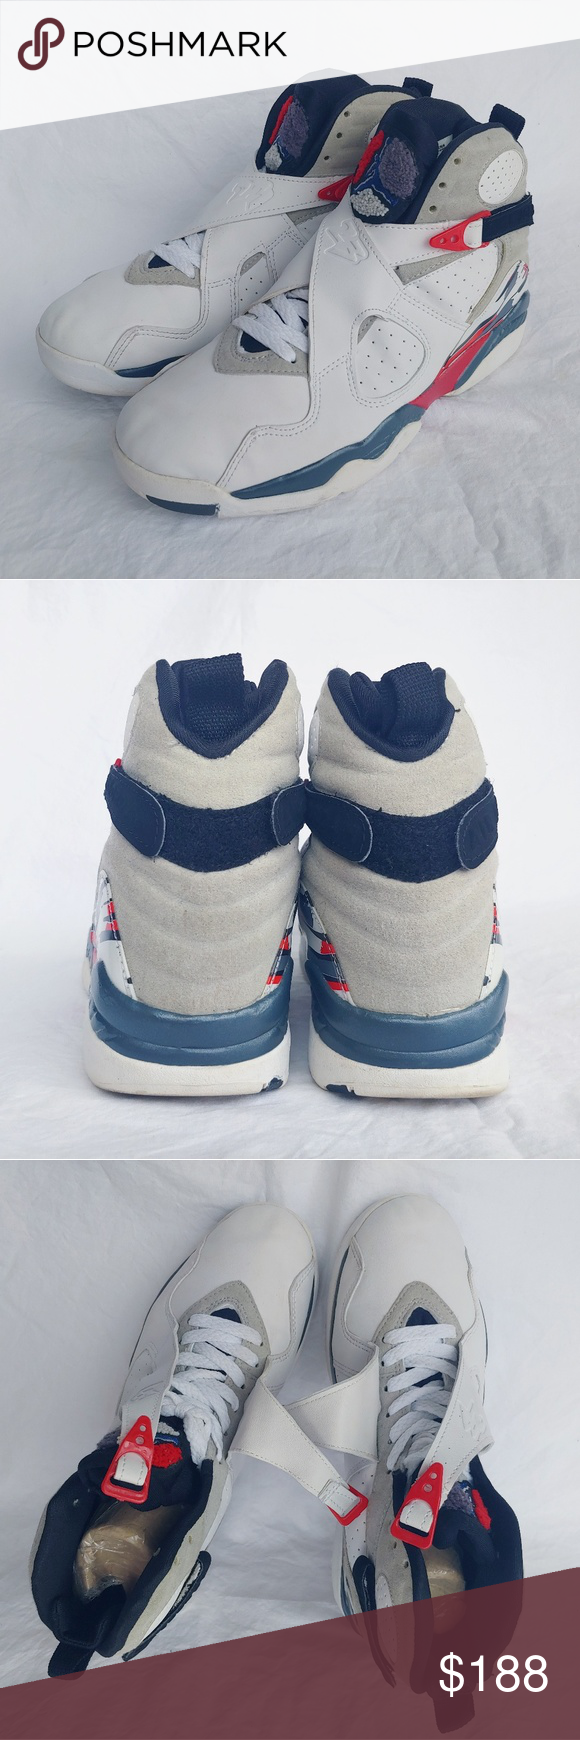 33f60df50248 Air Jordan VIII 8 Retro Size  10  Bugs Bunny  2003 Clean and in ...